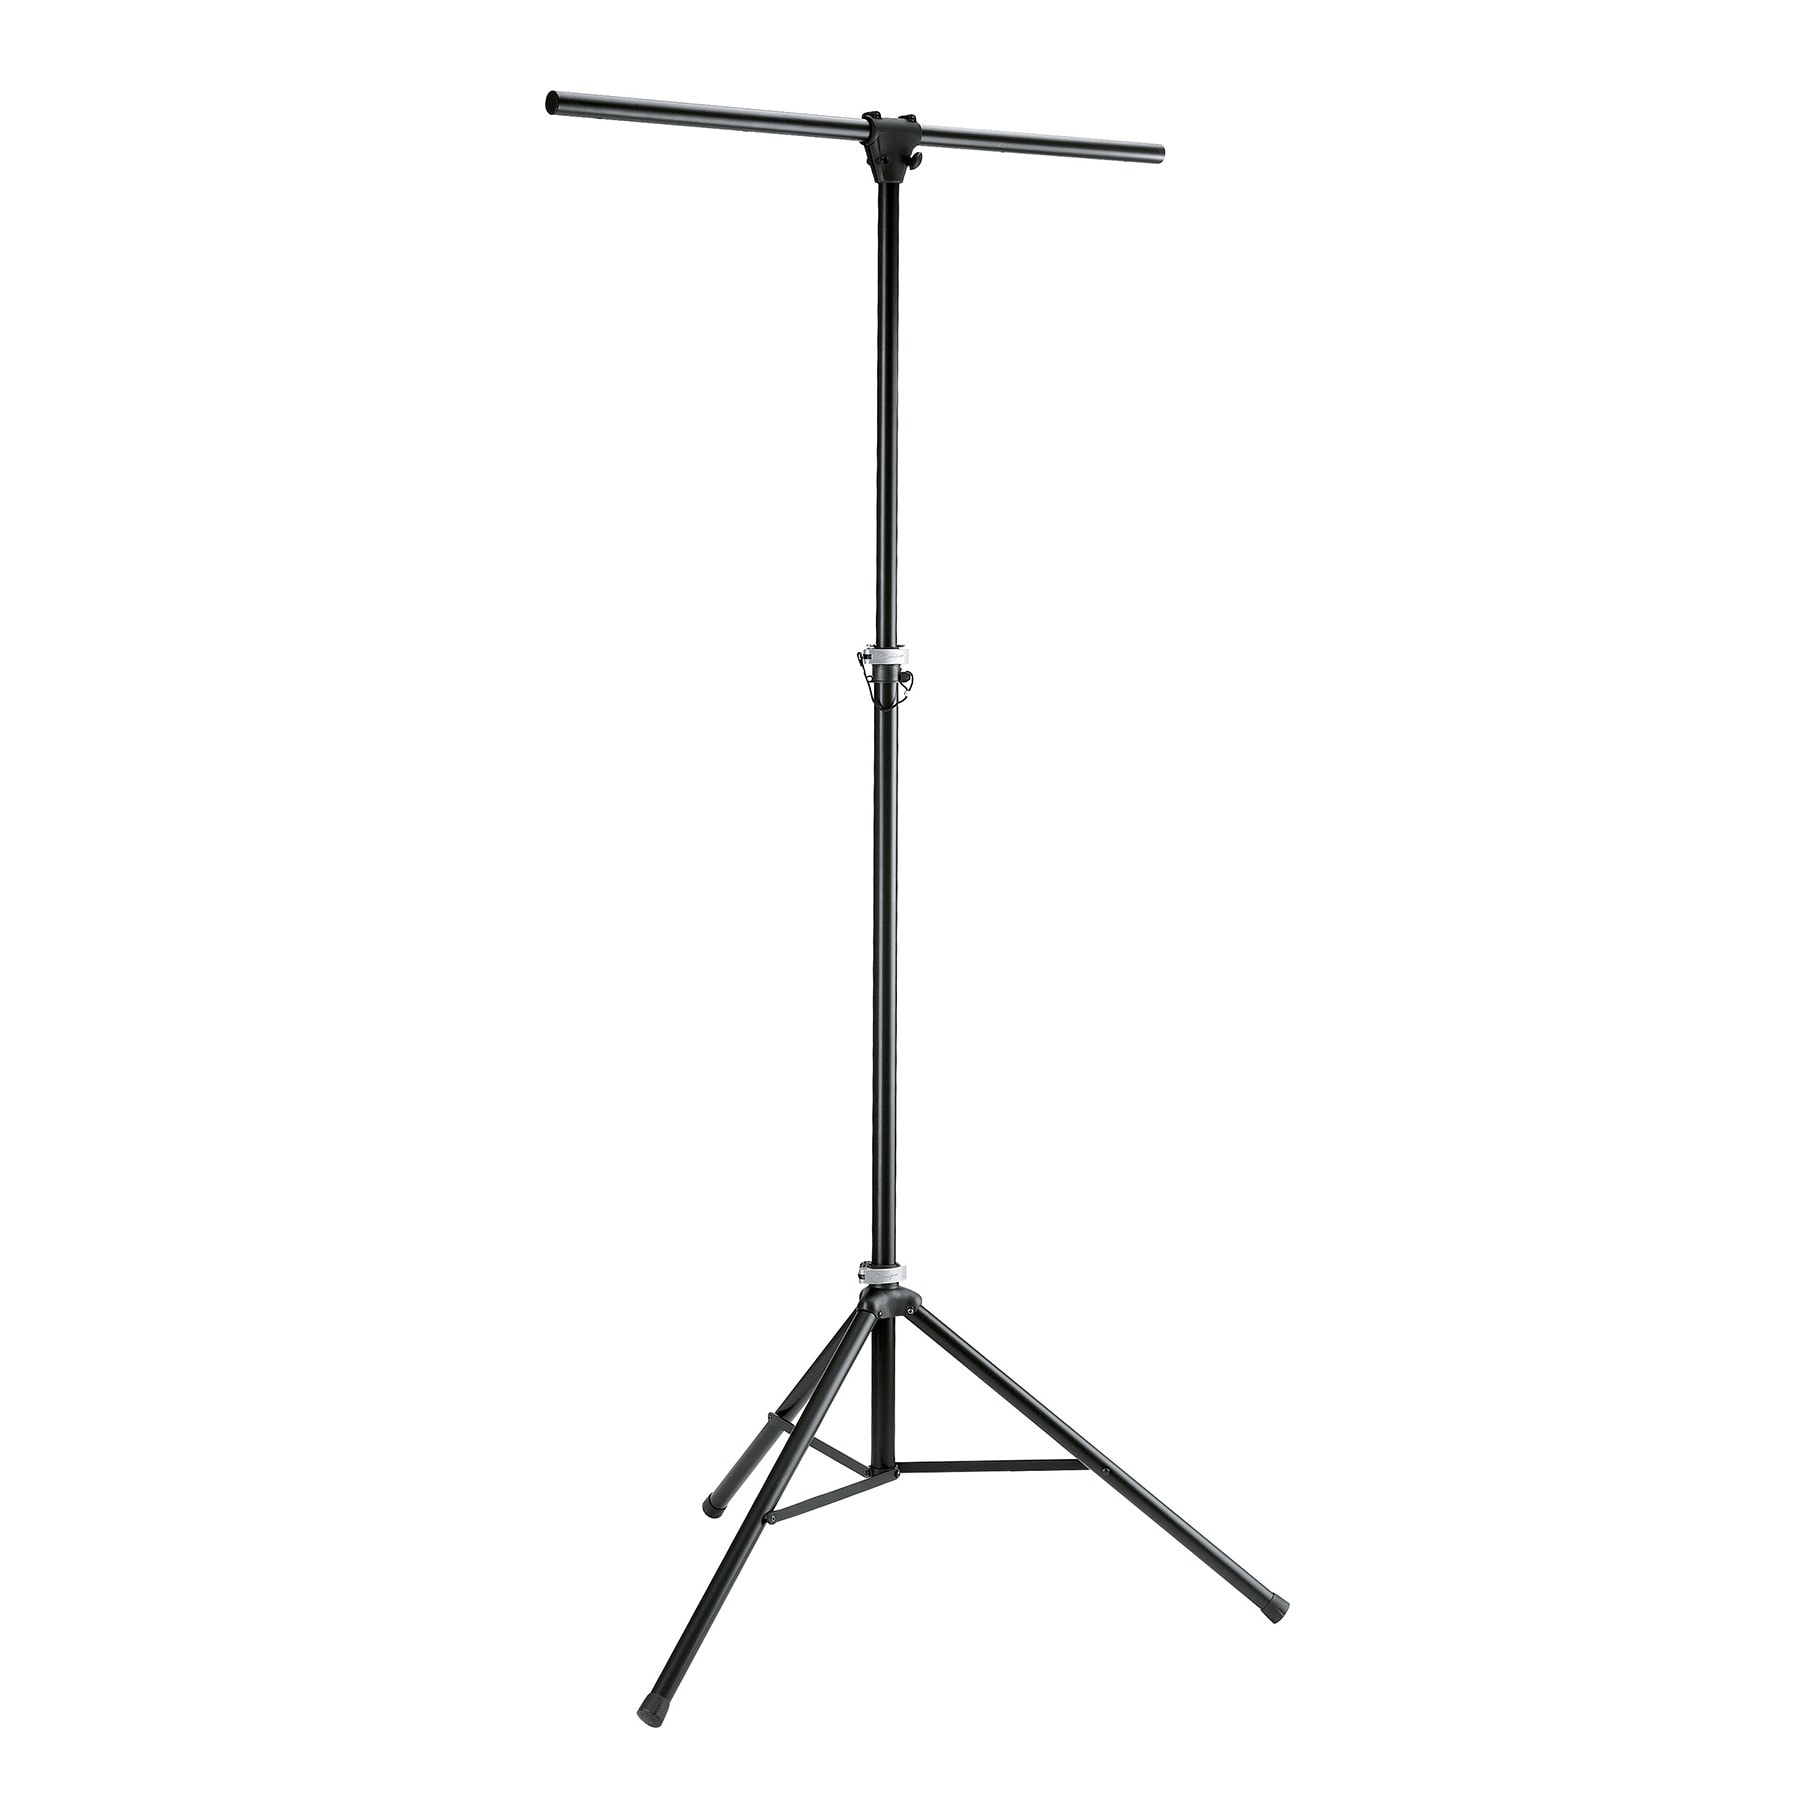 KM24620 - Lighting stand